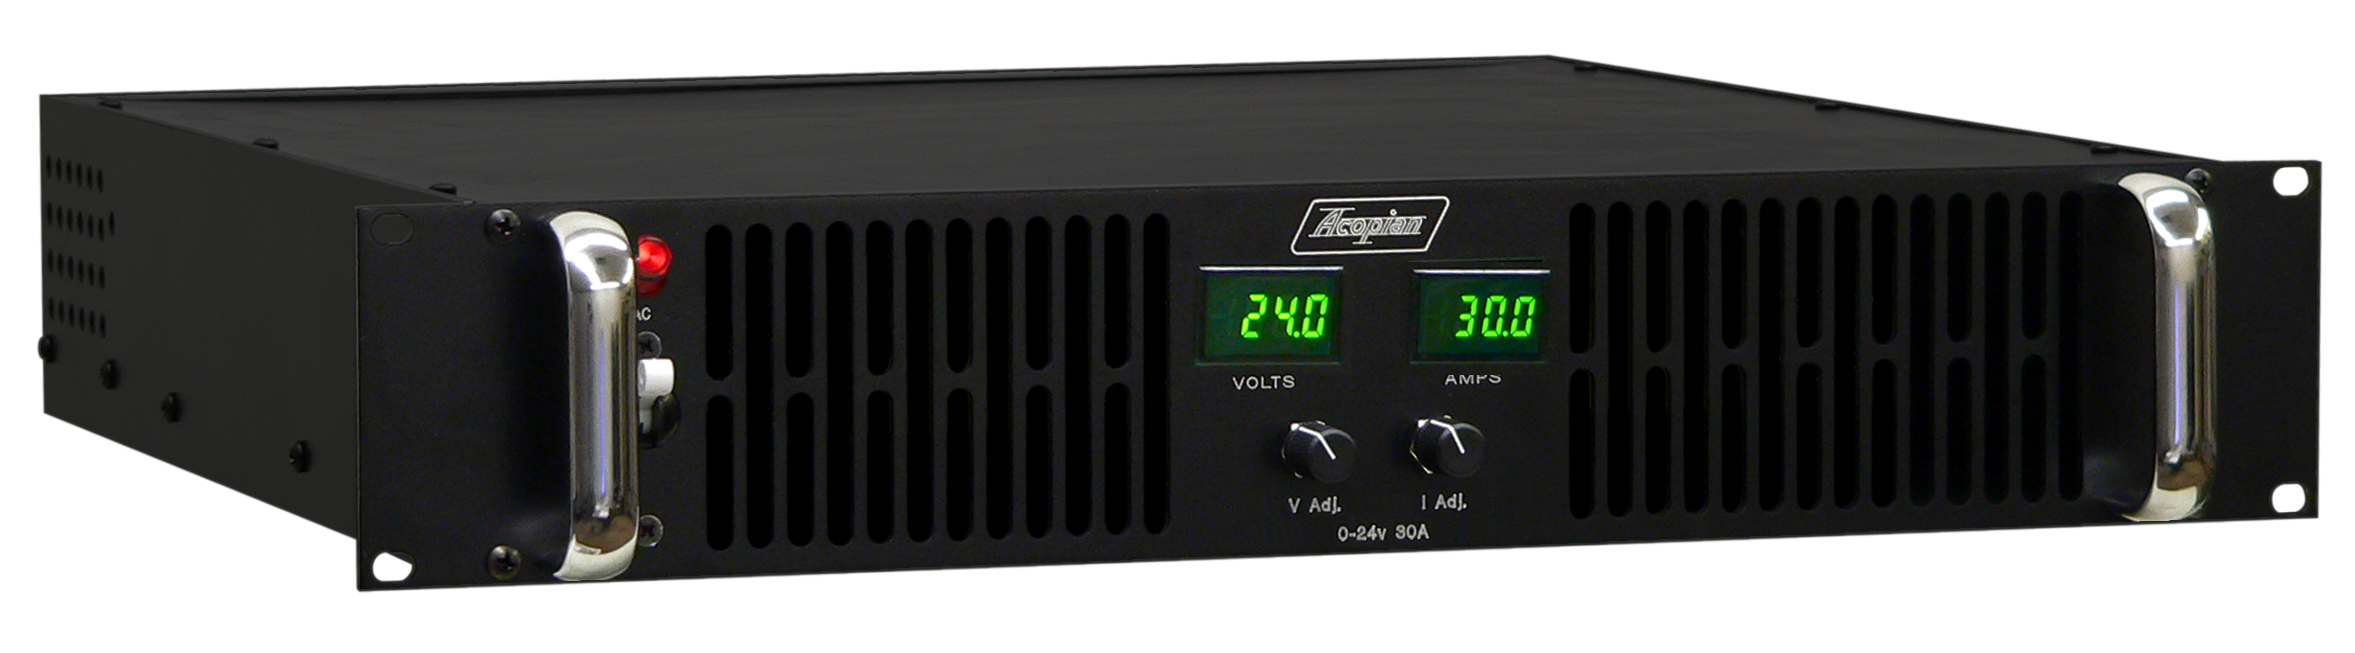 Programmable AC-DC Power Supply Provides 1400W in Rack & Benchtop Configurations